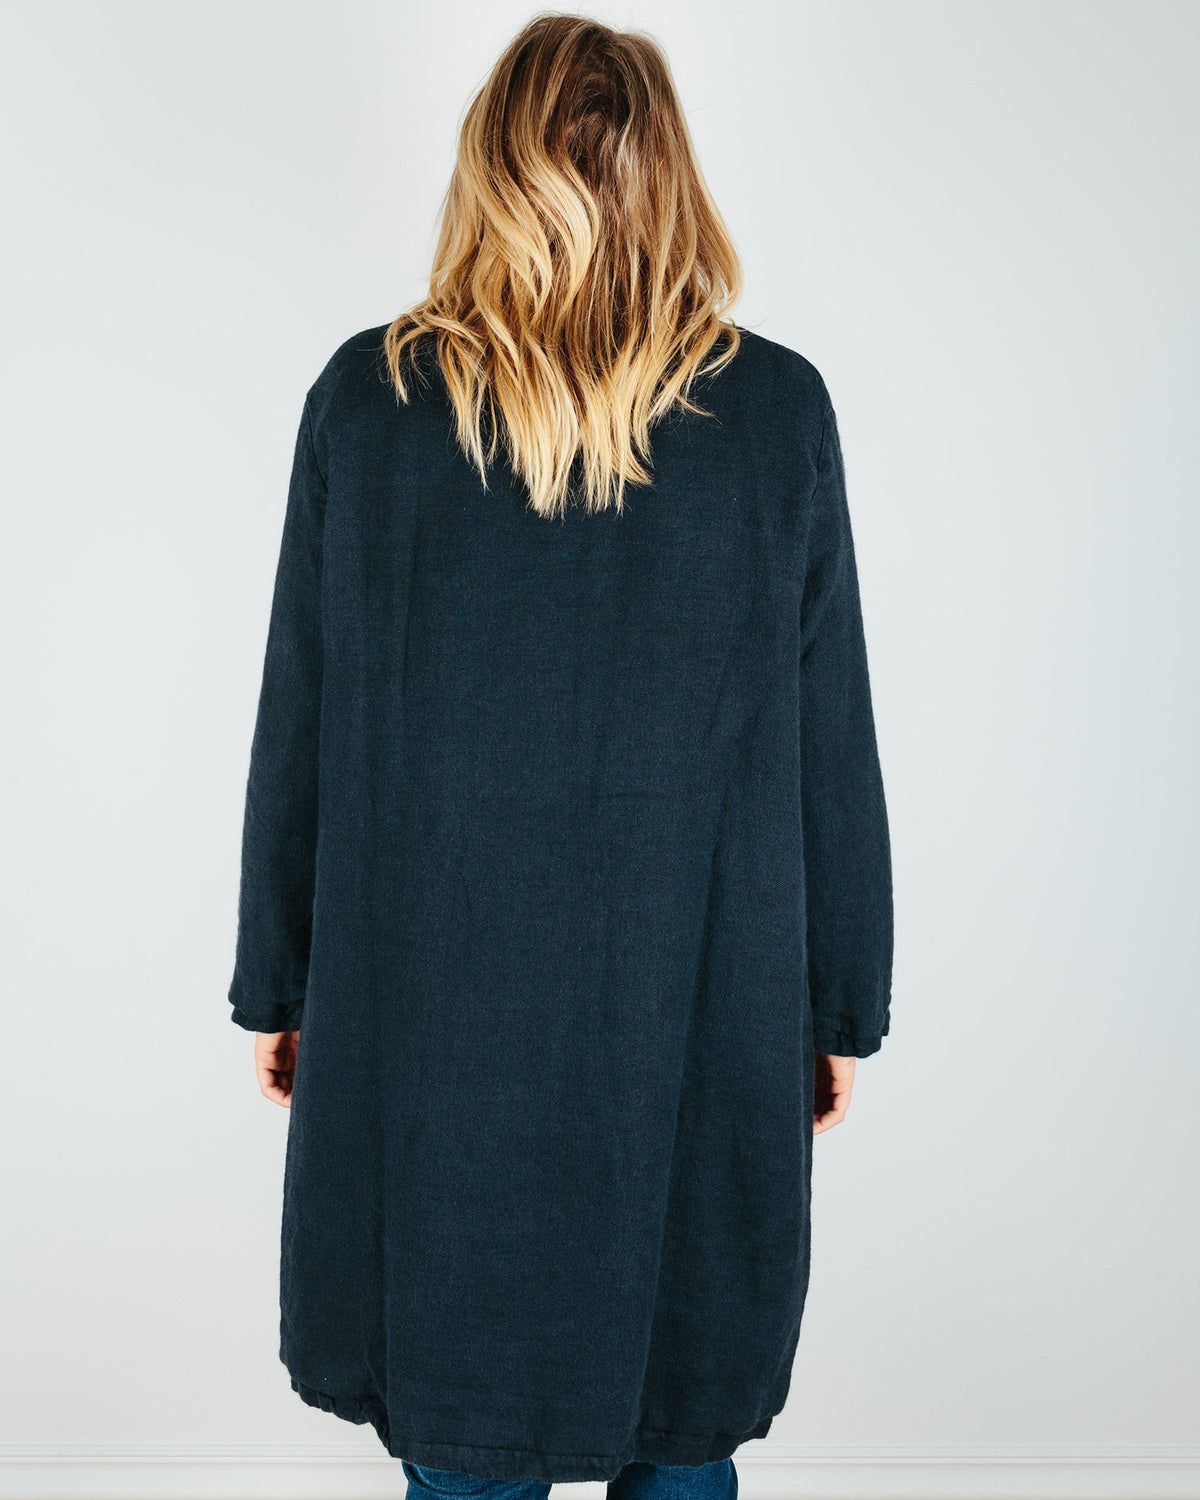 CP Shades Clothing Marian Linen/Wool Coat in Ink